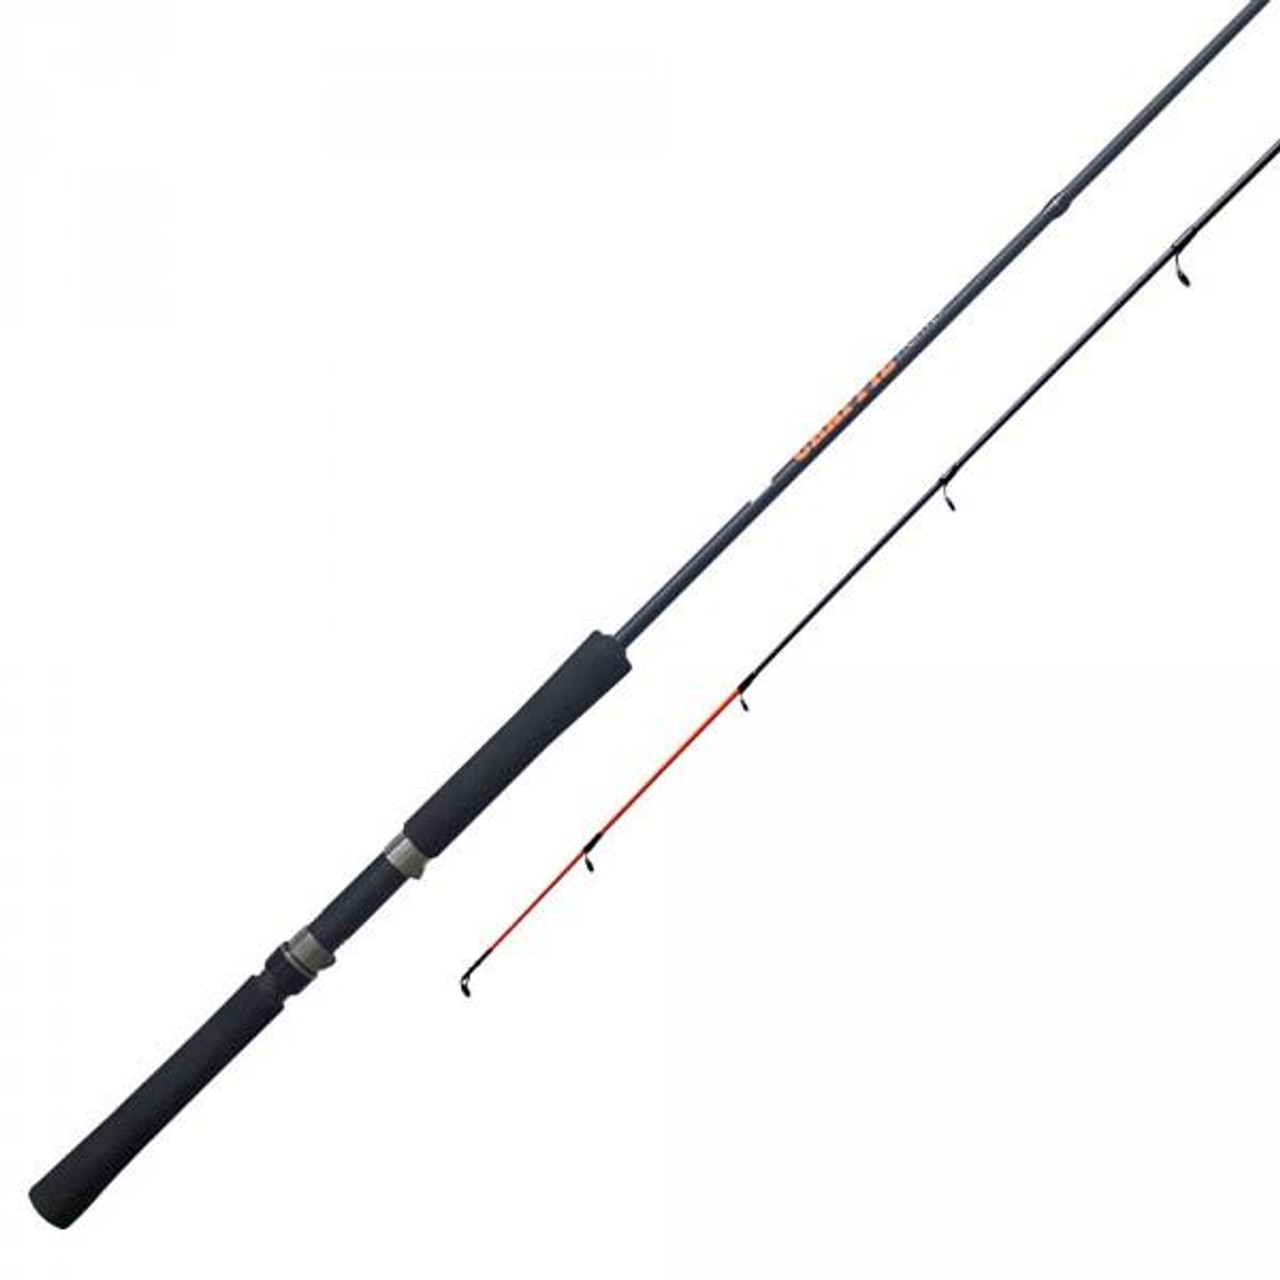 10/' New Zebco Crappie Fighter 2pc Light Action Spinning Rod CRFS102LA.PB3